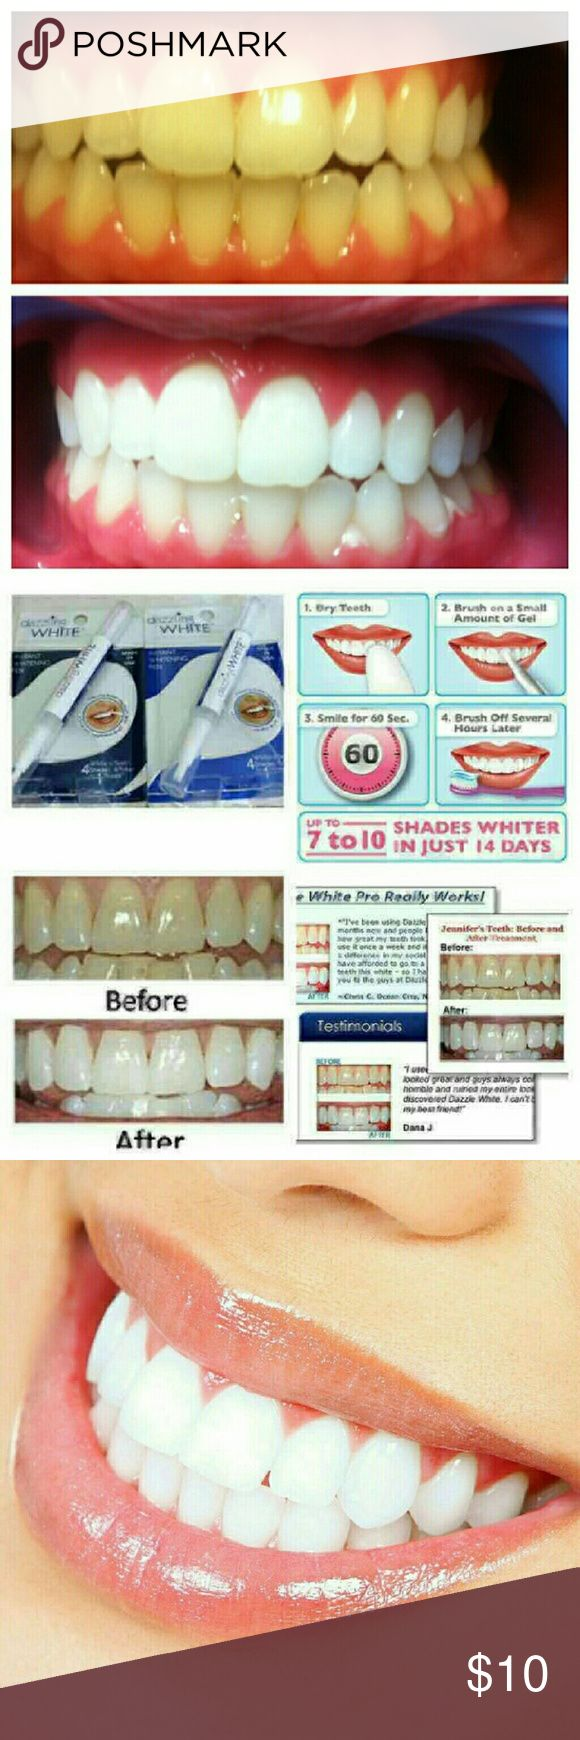 (2) Instant Teeth whitening Pens You receive two, good for 50 uses each. Accessories